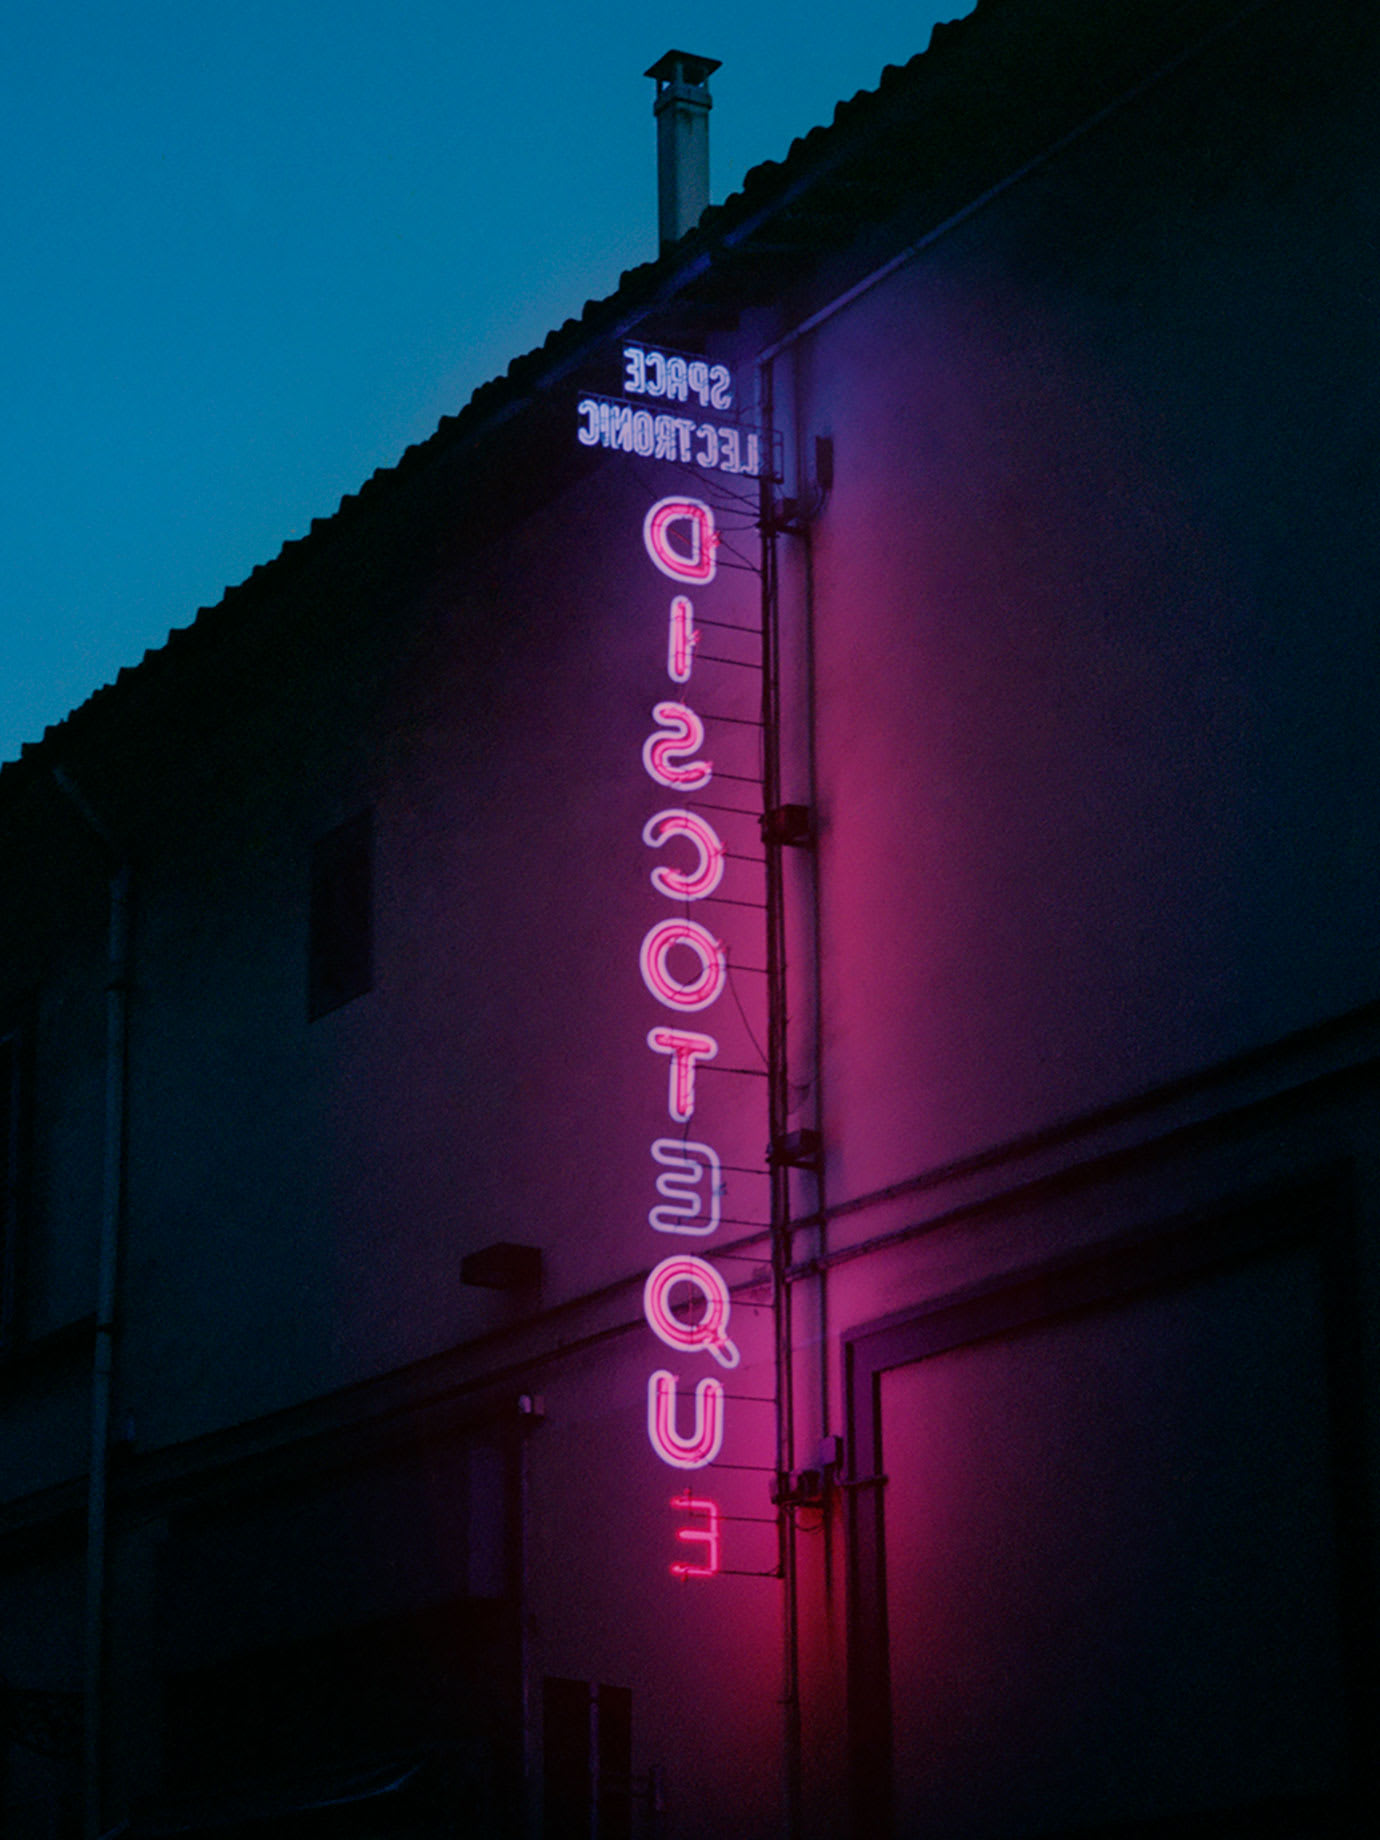 A purple neon sign on the side of a building.